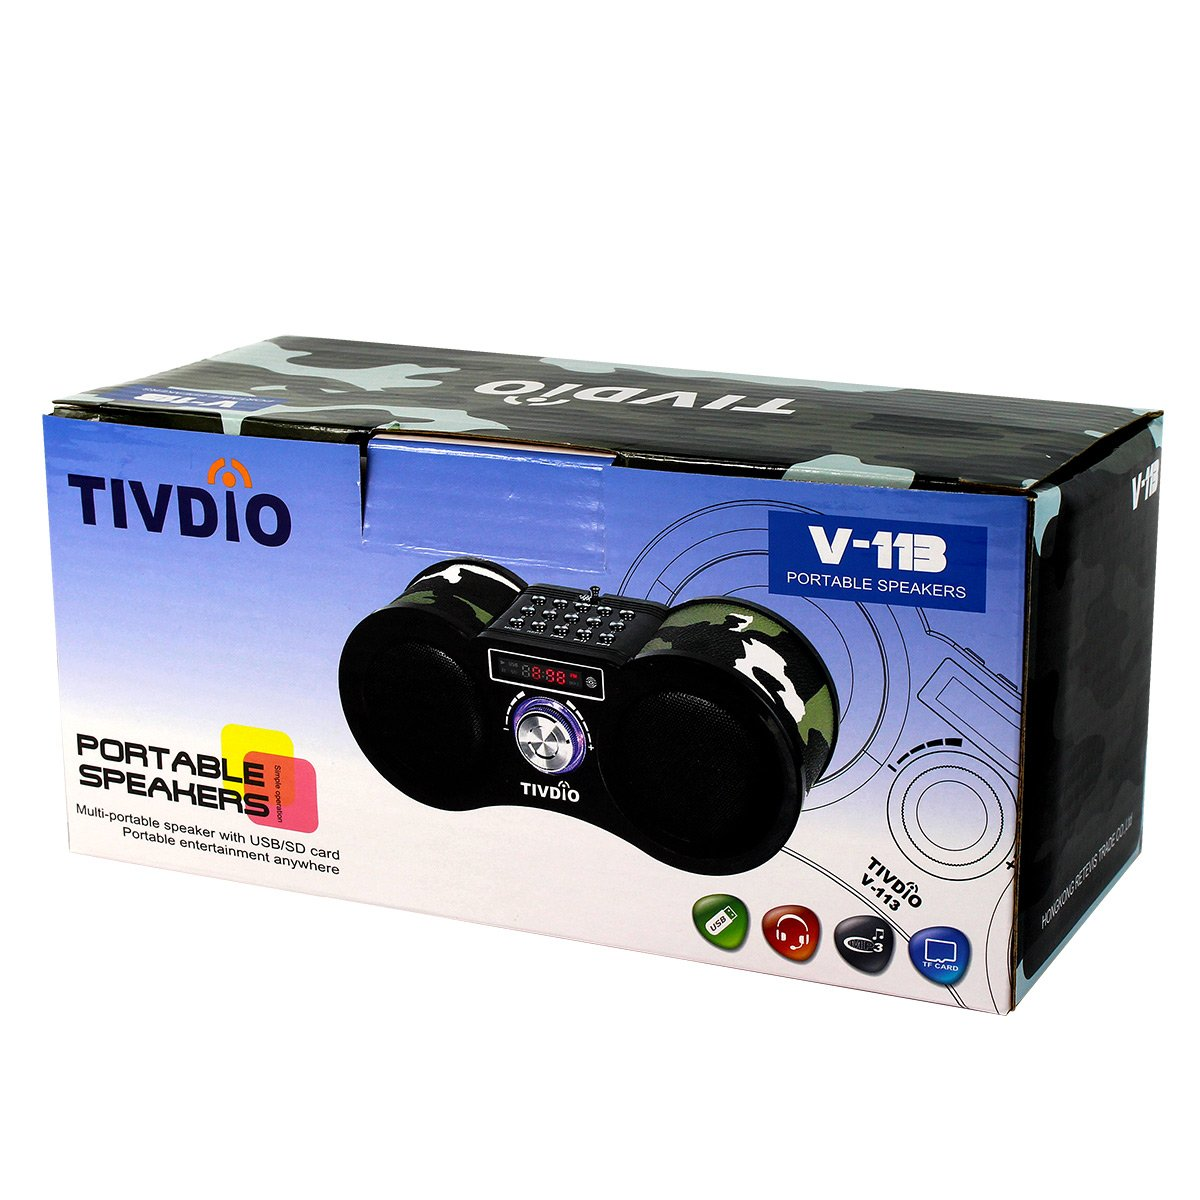 TIVDIO V-113 Portable Transistor FM Stereo Radio Support Mp3 Music Player Speaker Micro SD IF Card Aux Line In Remote(Camouflage) by TIVDIO (Image #8)